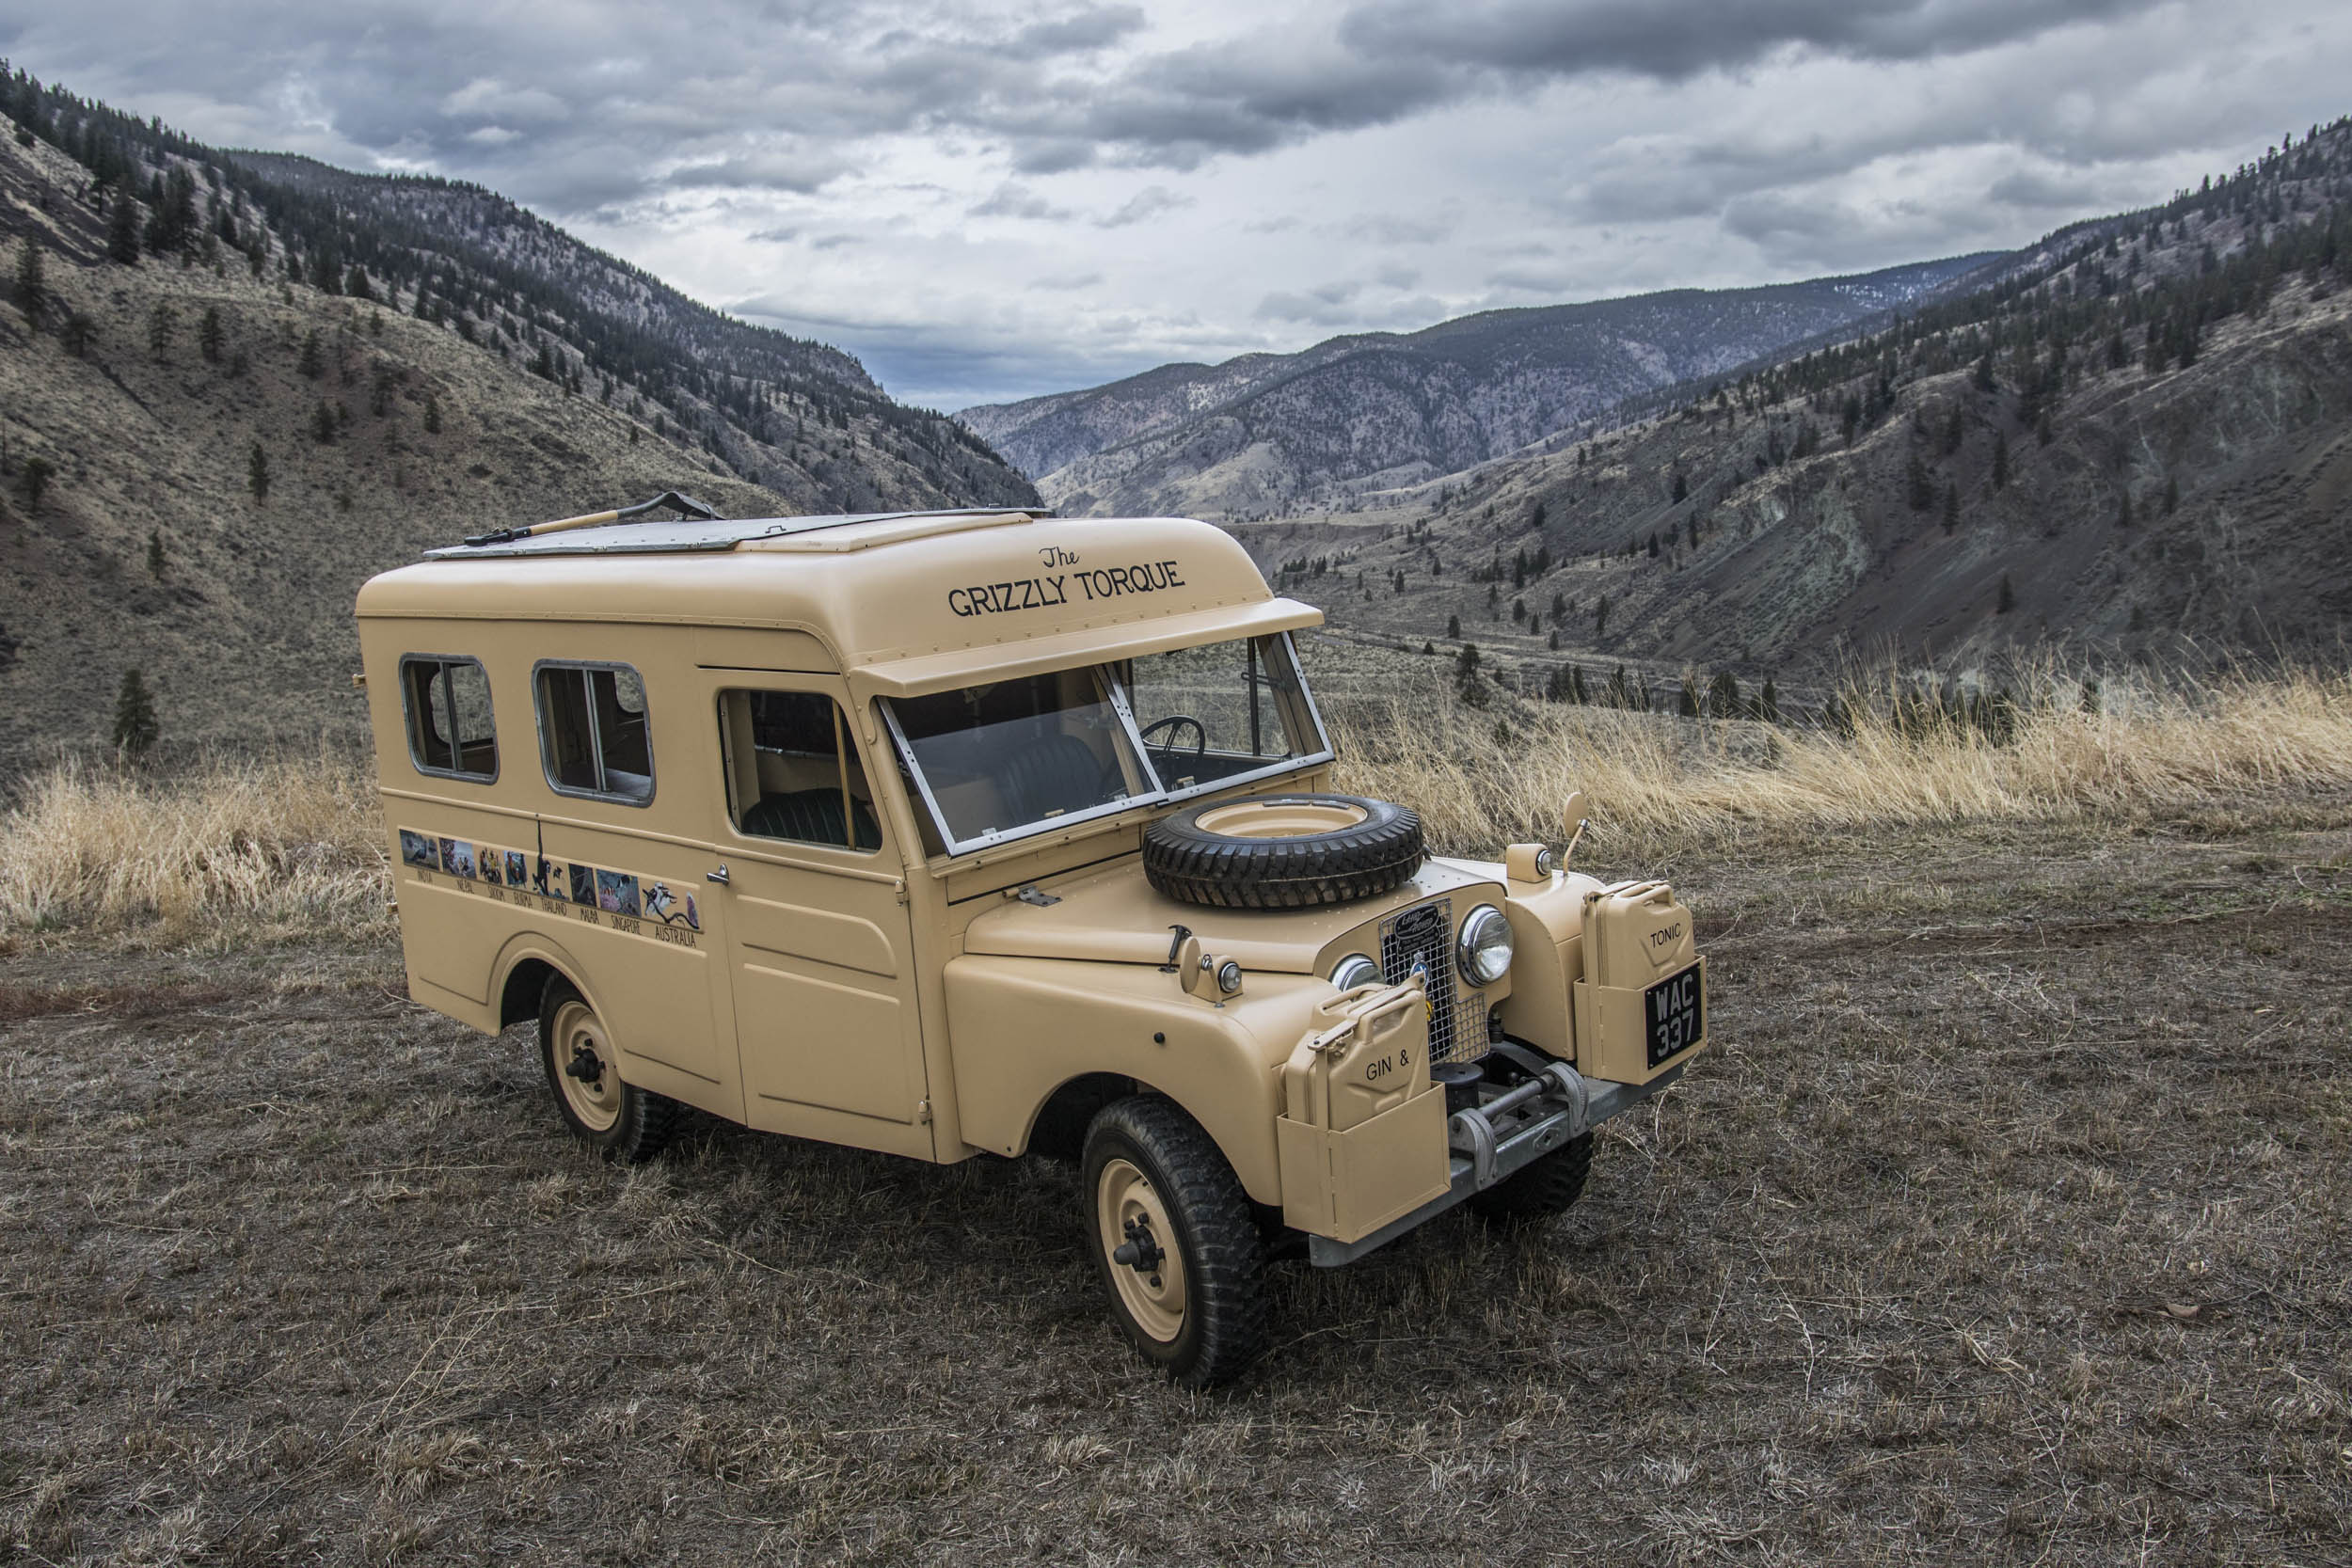 1957 Land Rover the Grizzly Torque in the mountains